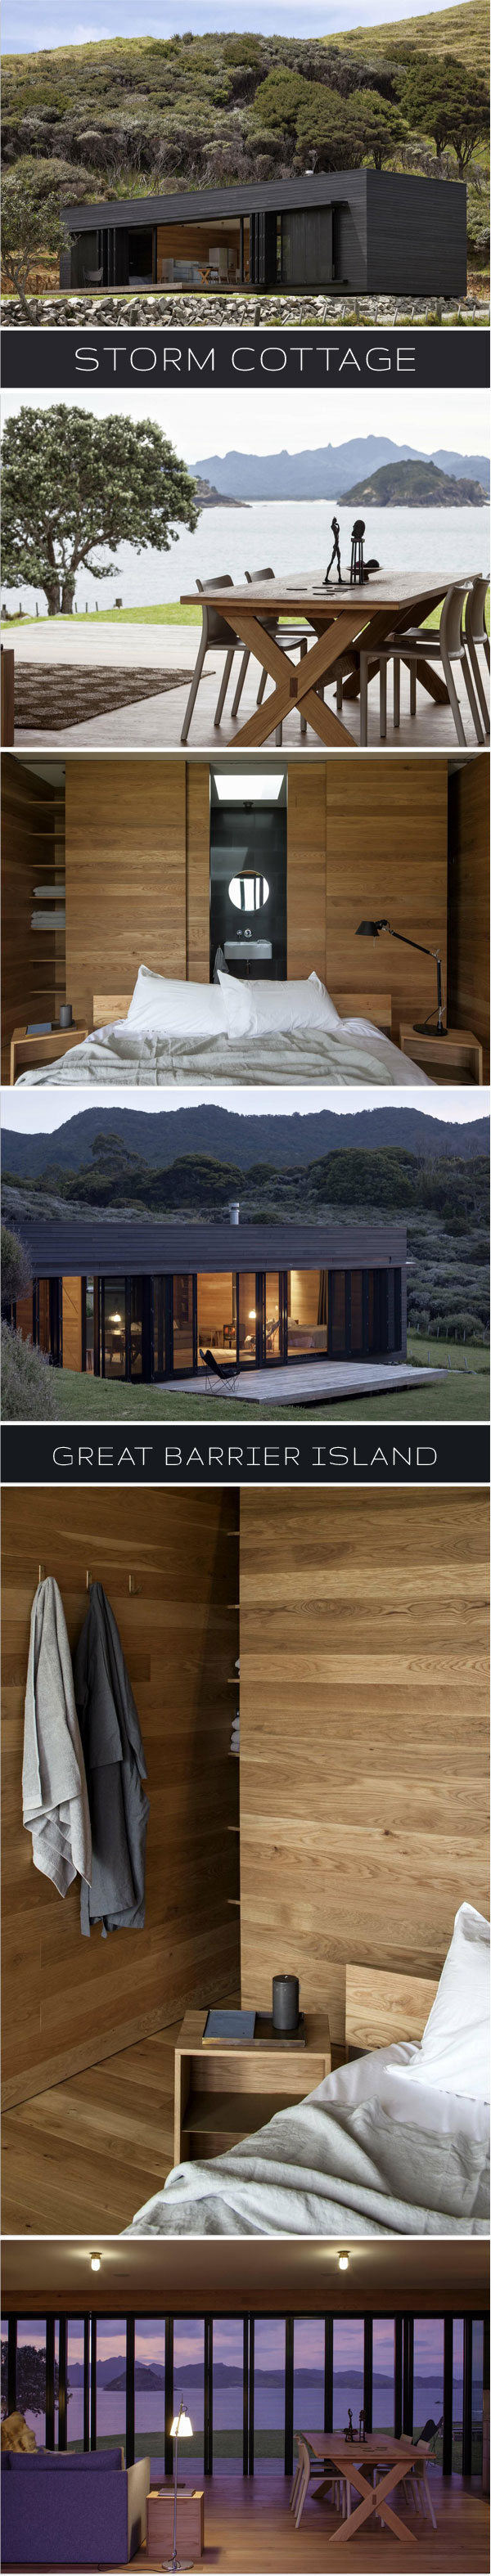 InnenAnsichten: STORM COTTAGE | Great Barrier Island